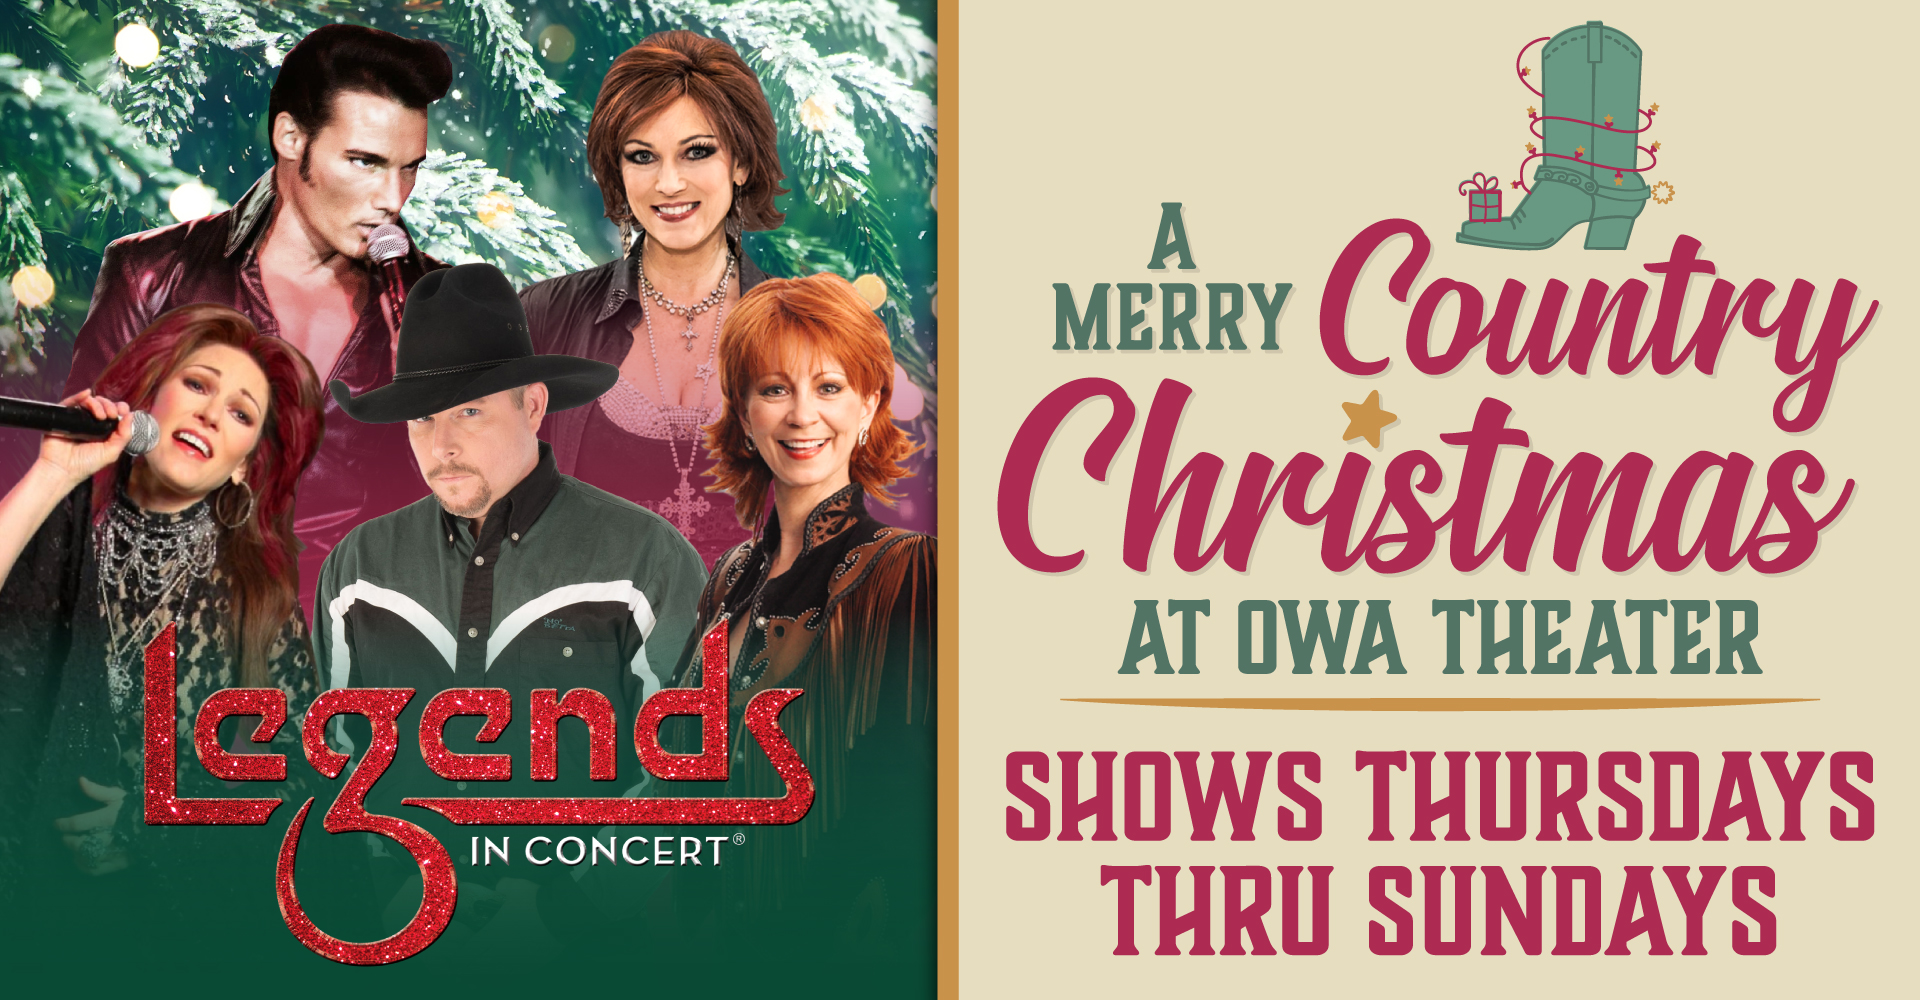 Legends in Concert 🎄 A Merry Country Christmas 🎄